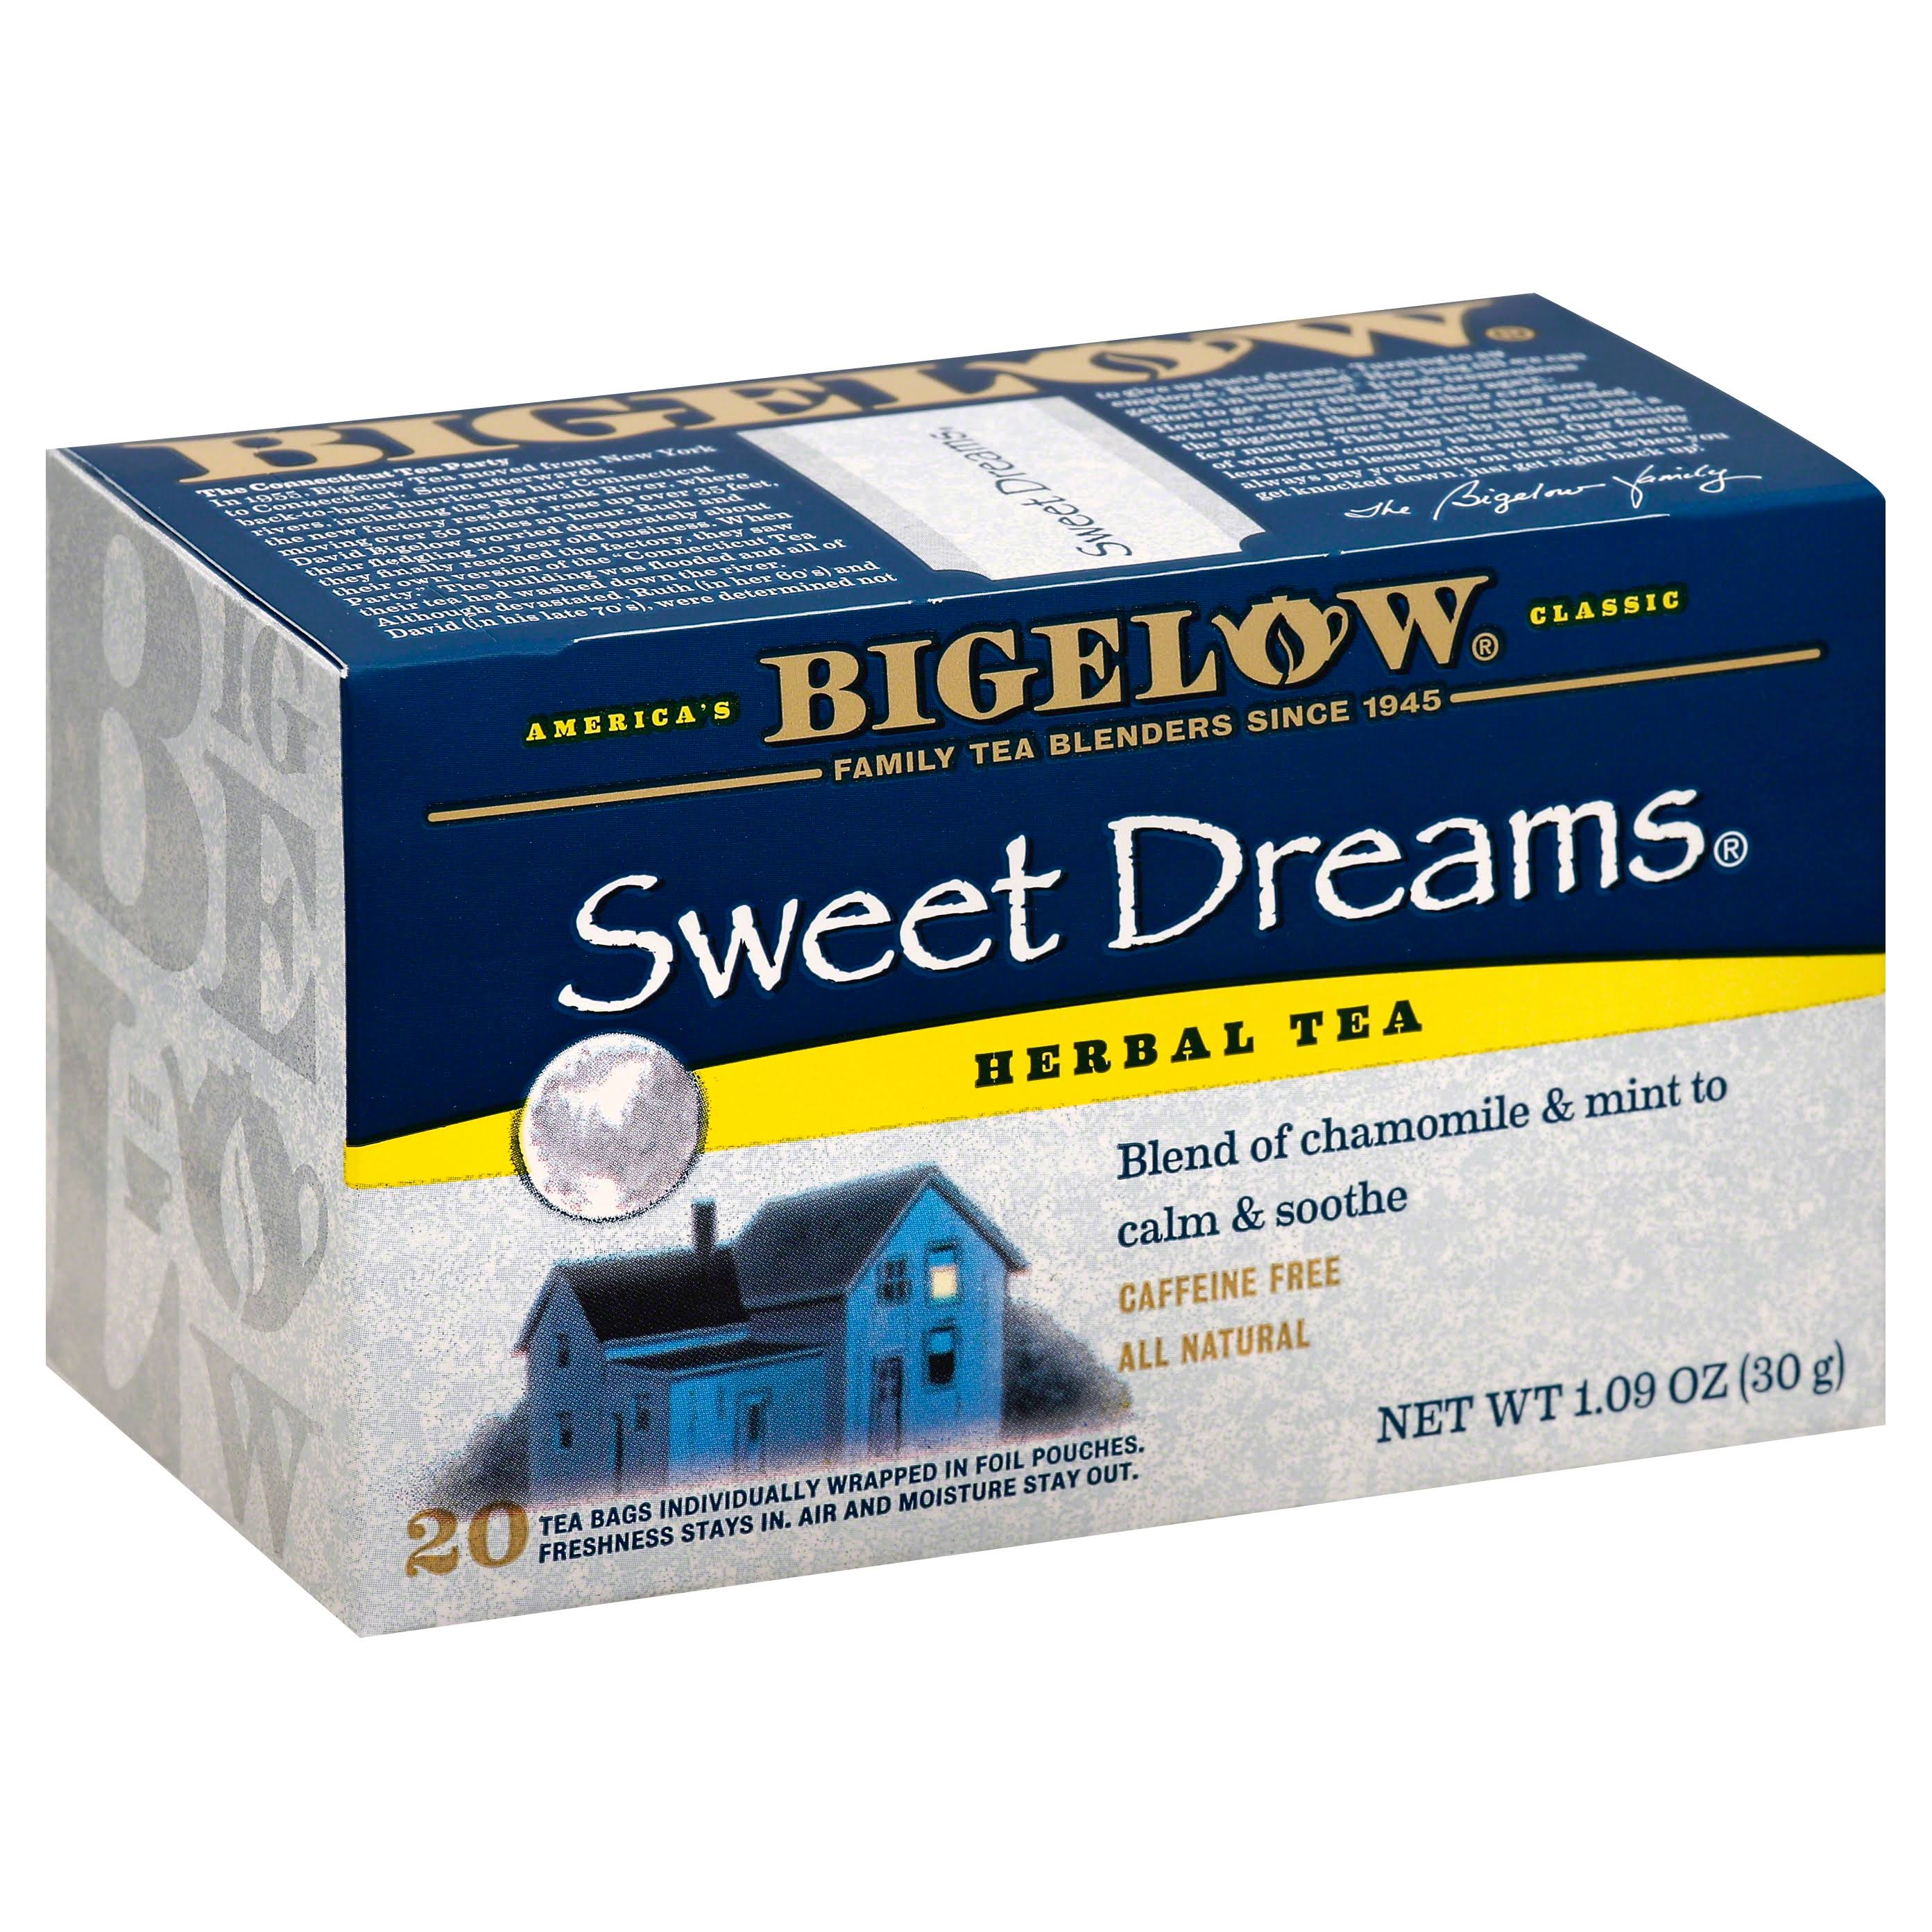 Bigelow Sweet Dreams Herbal Tea Bags - 1.09oz, x20